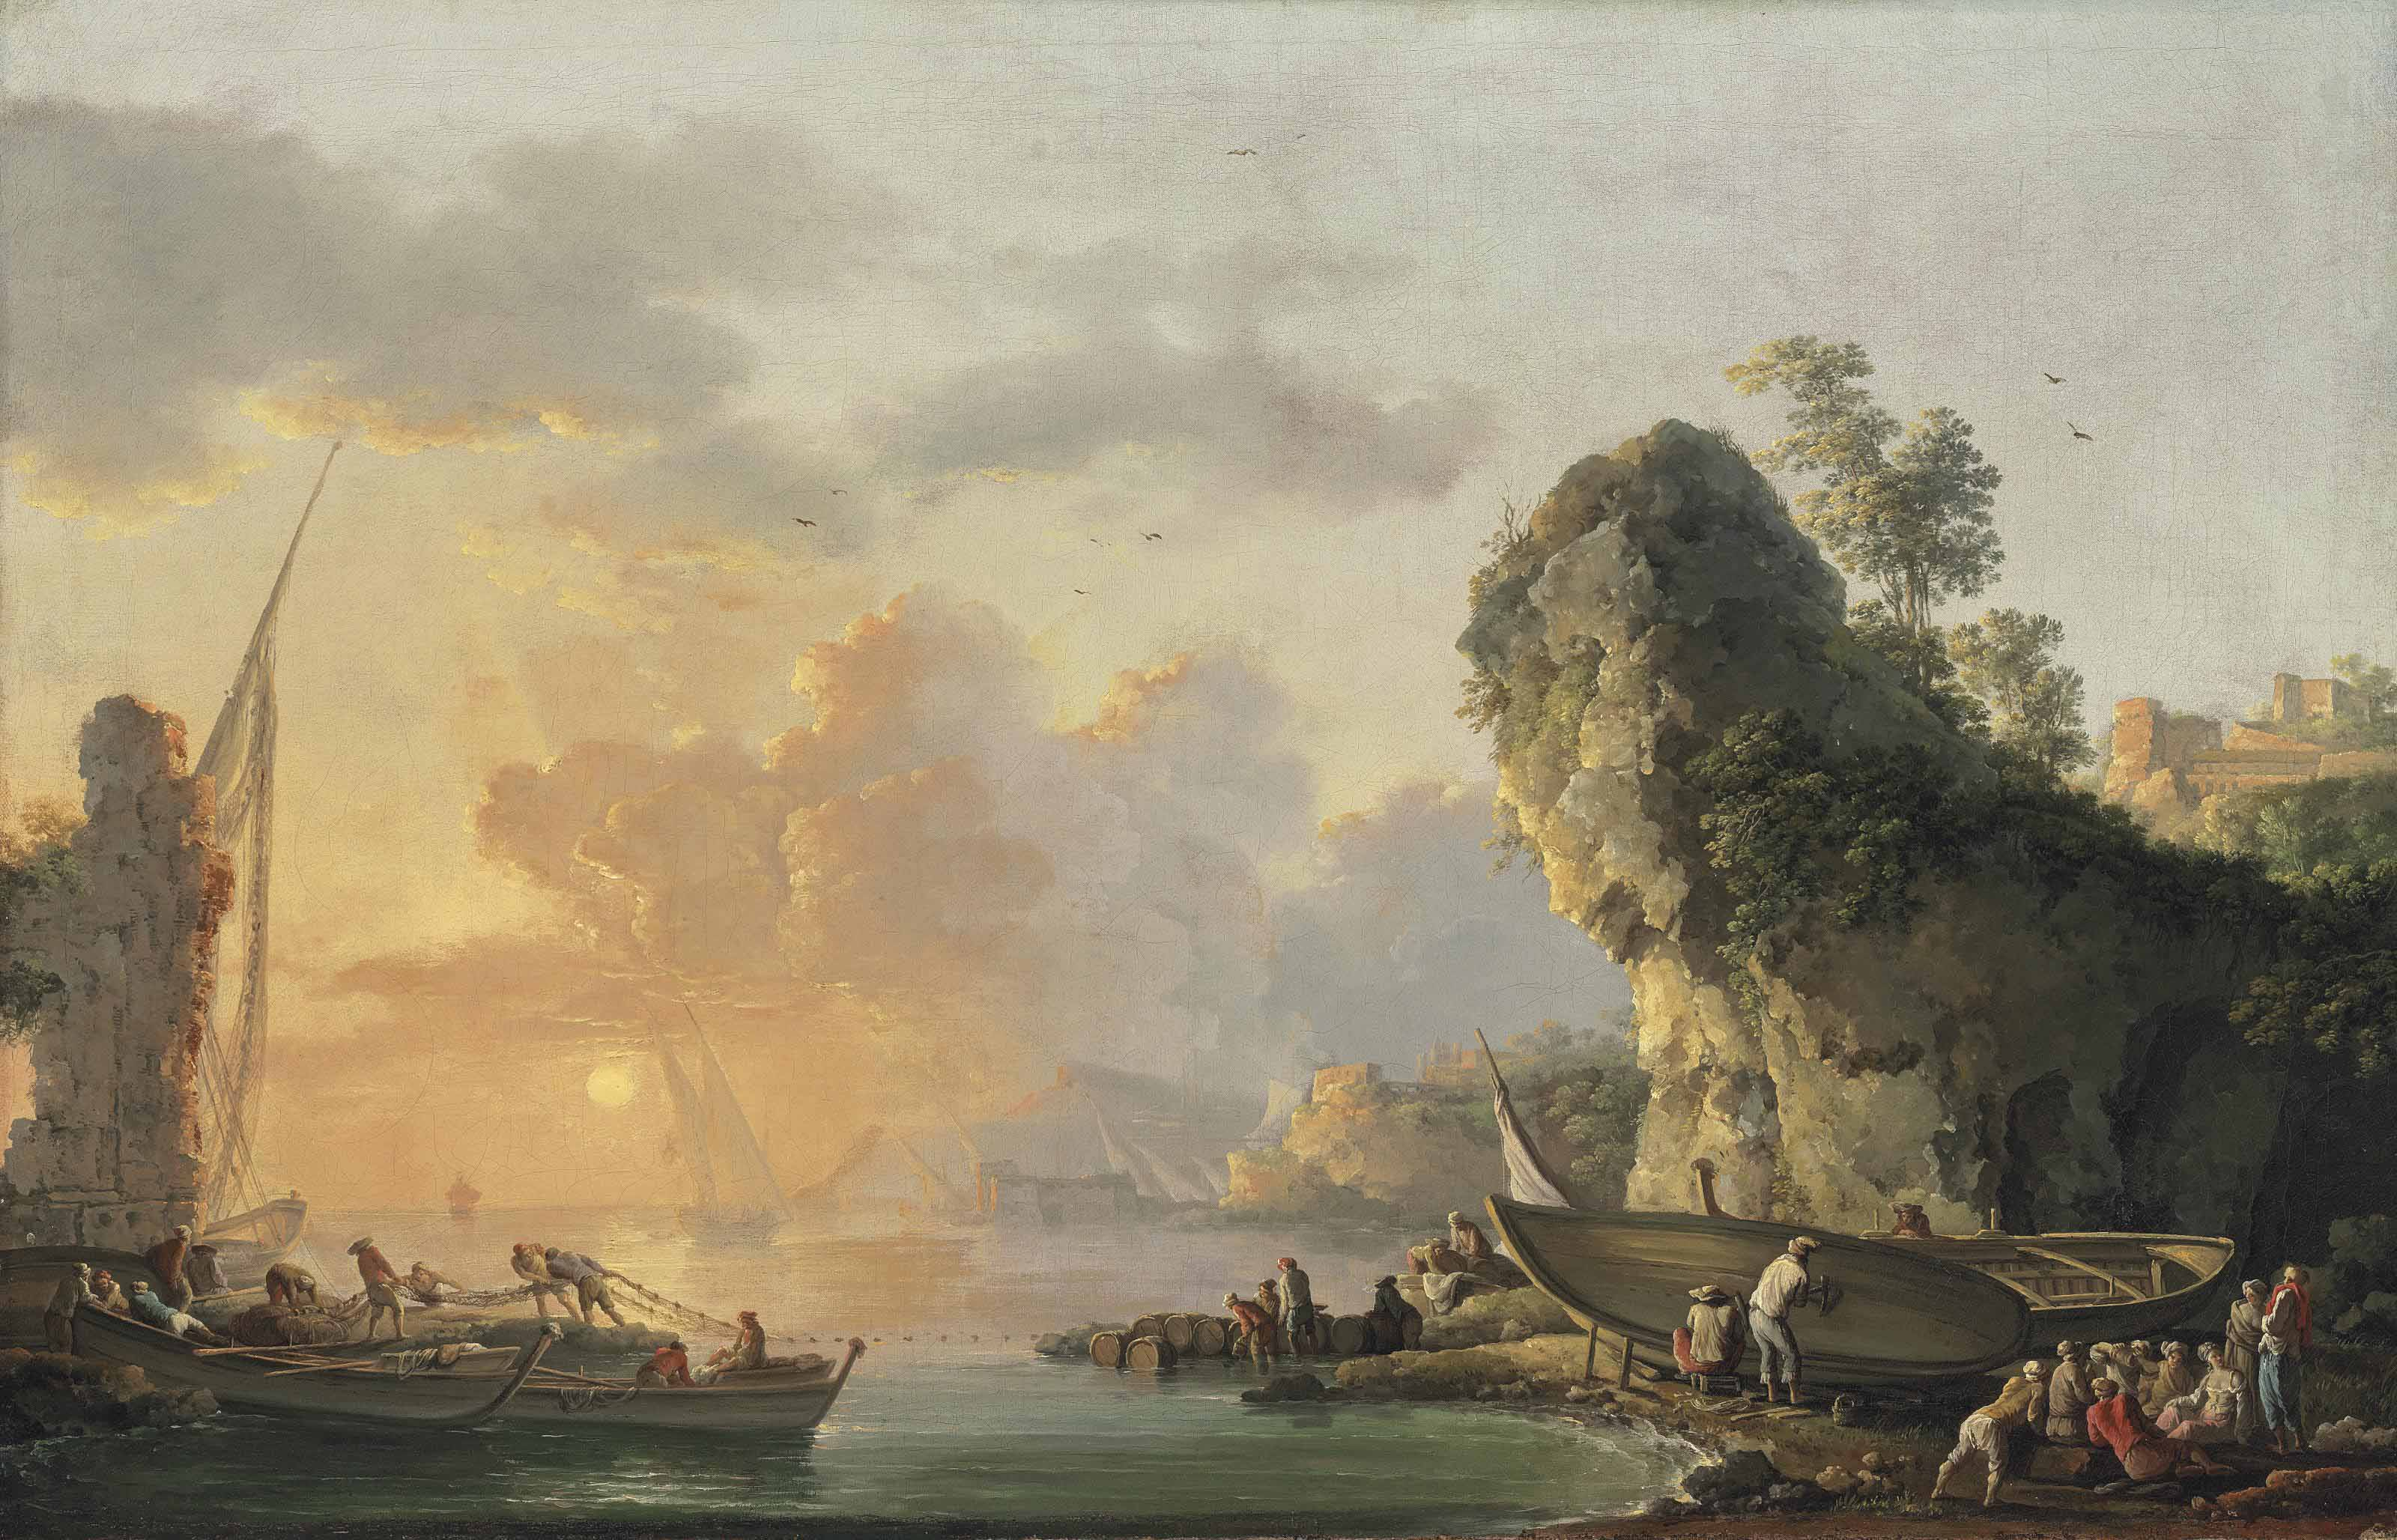 A coastal landscape with fishermen pulling in their nets at sunset, others repairing their boats and resting on the shore by a rocky outcrop, a town on the hills beyond